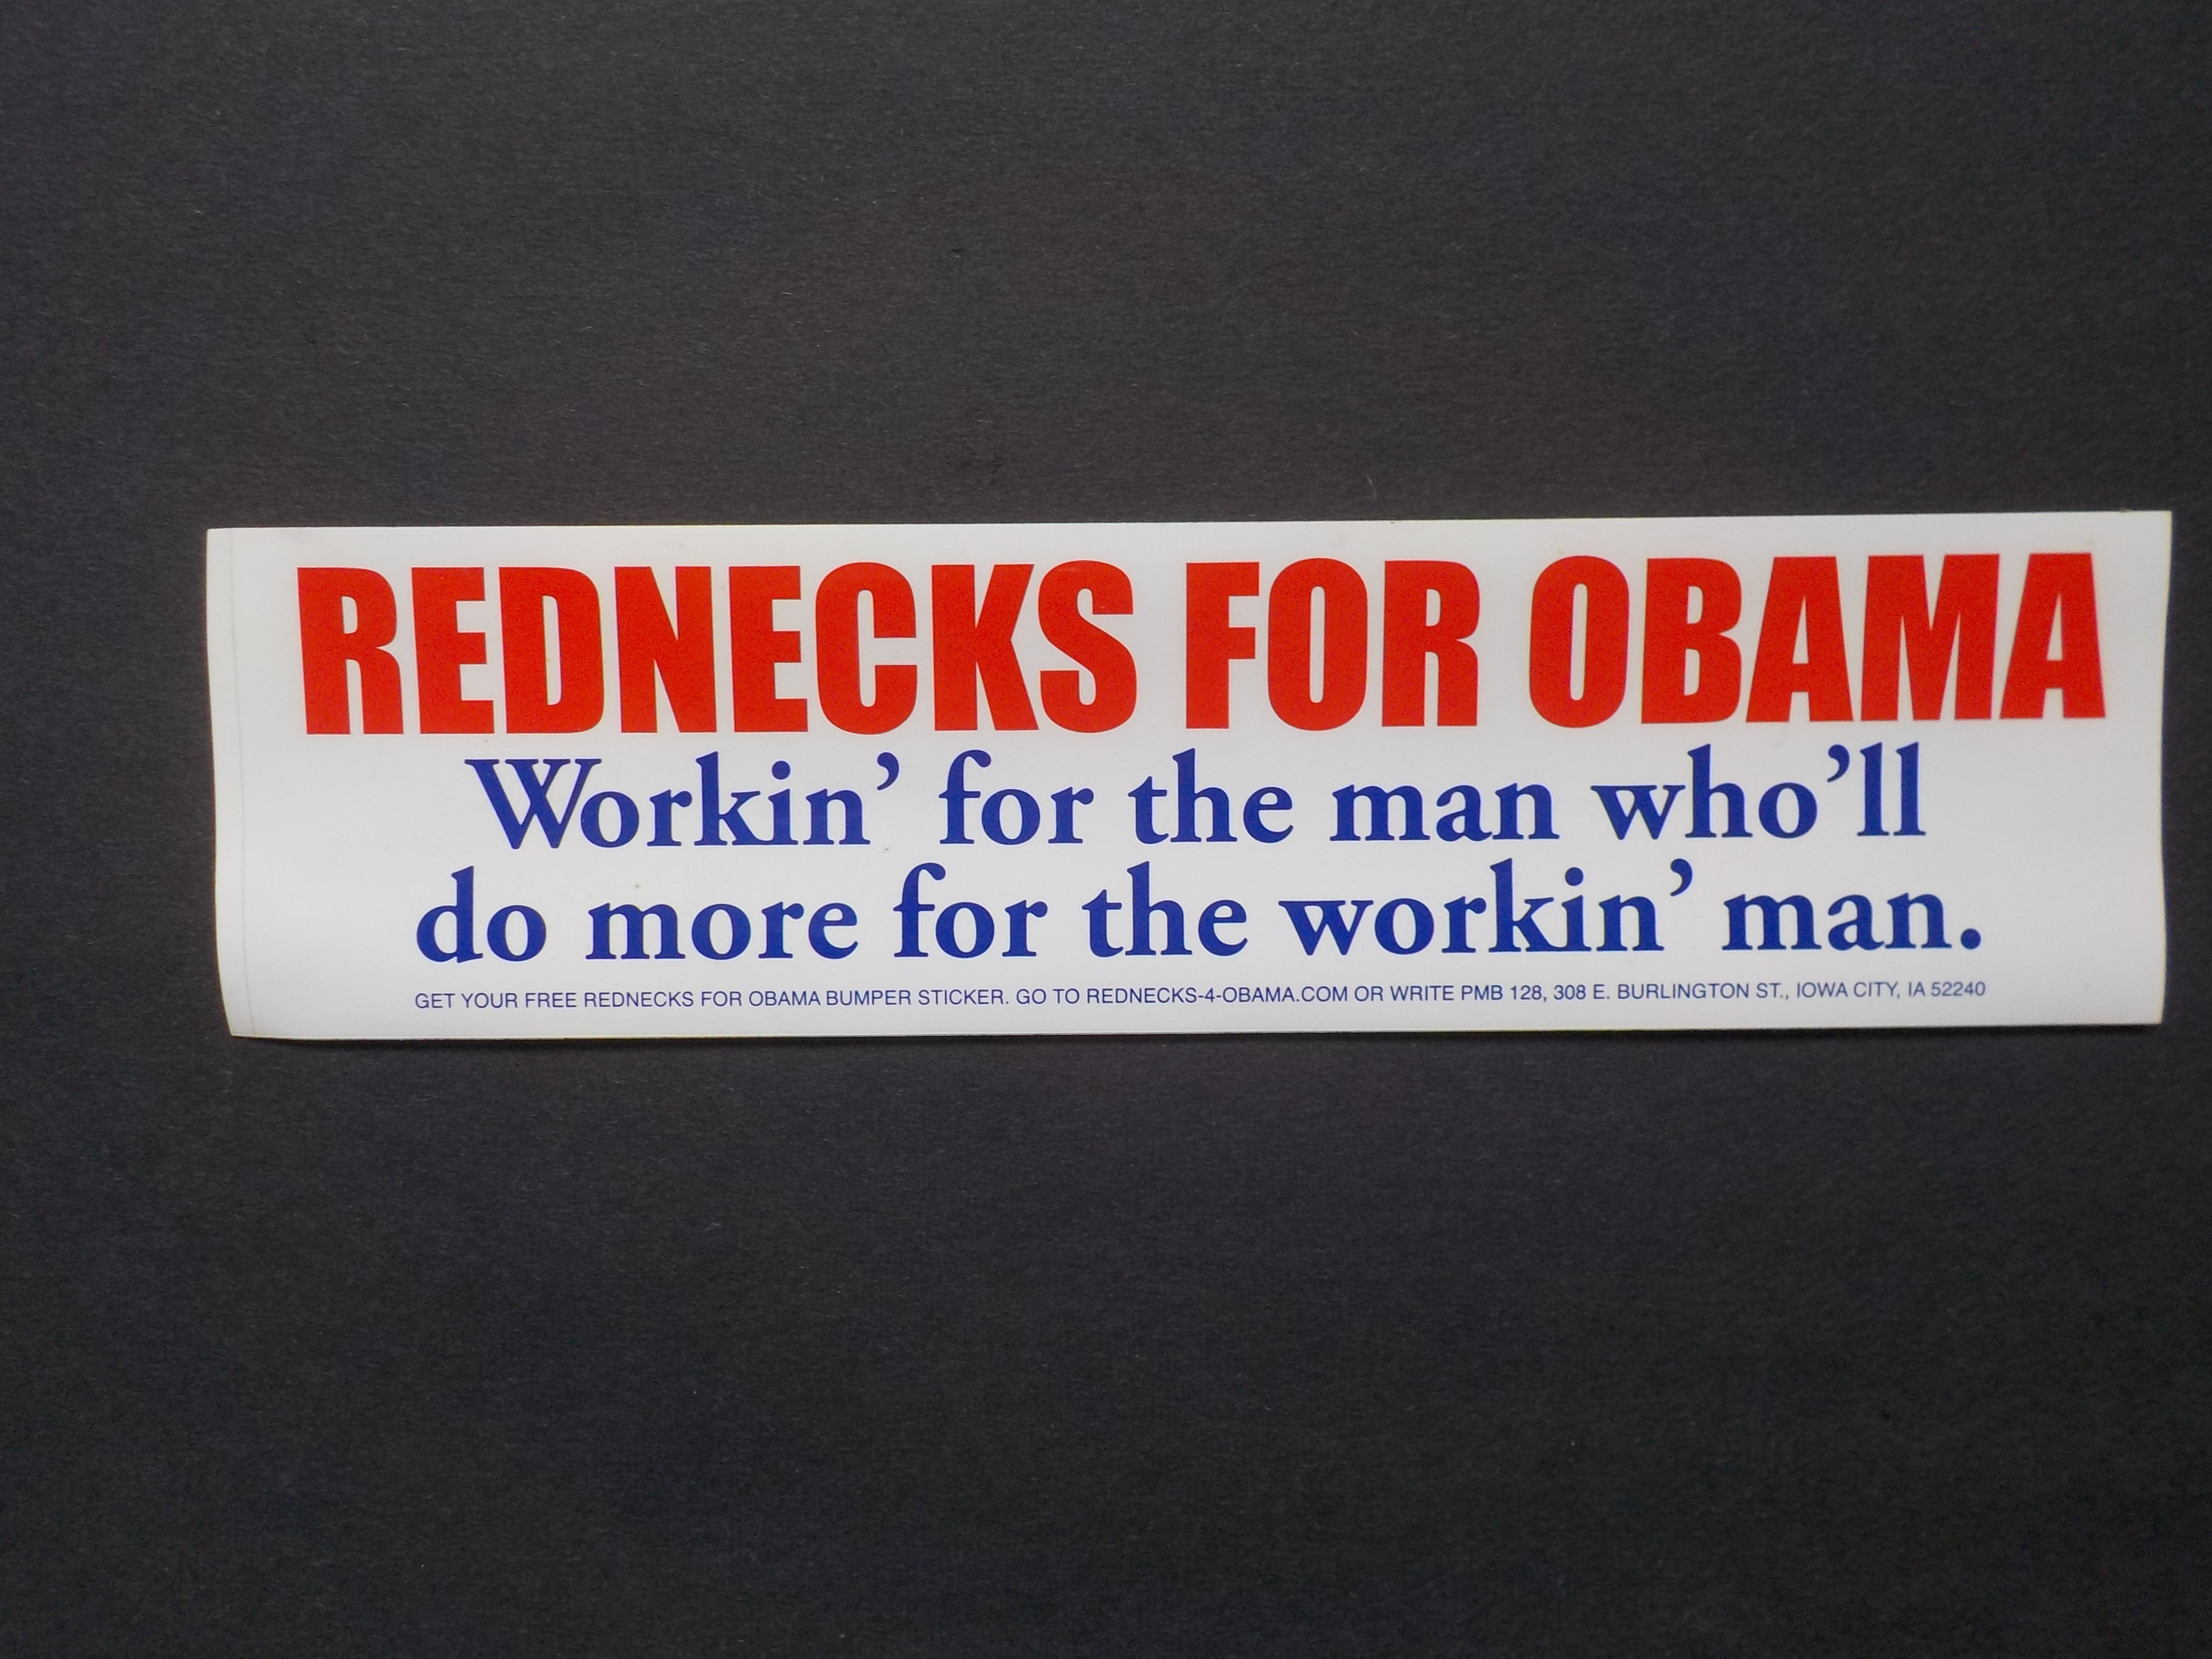 Rednecks for Obama